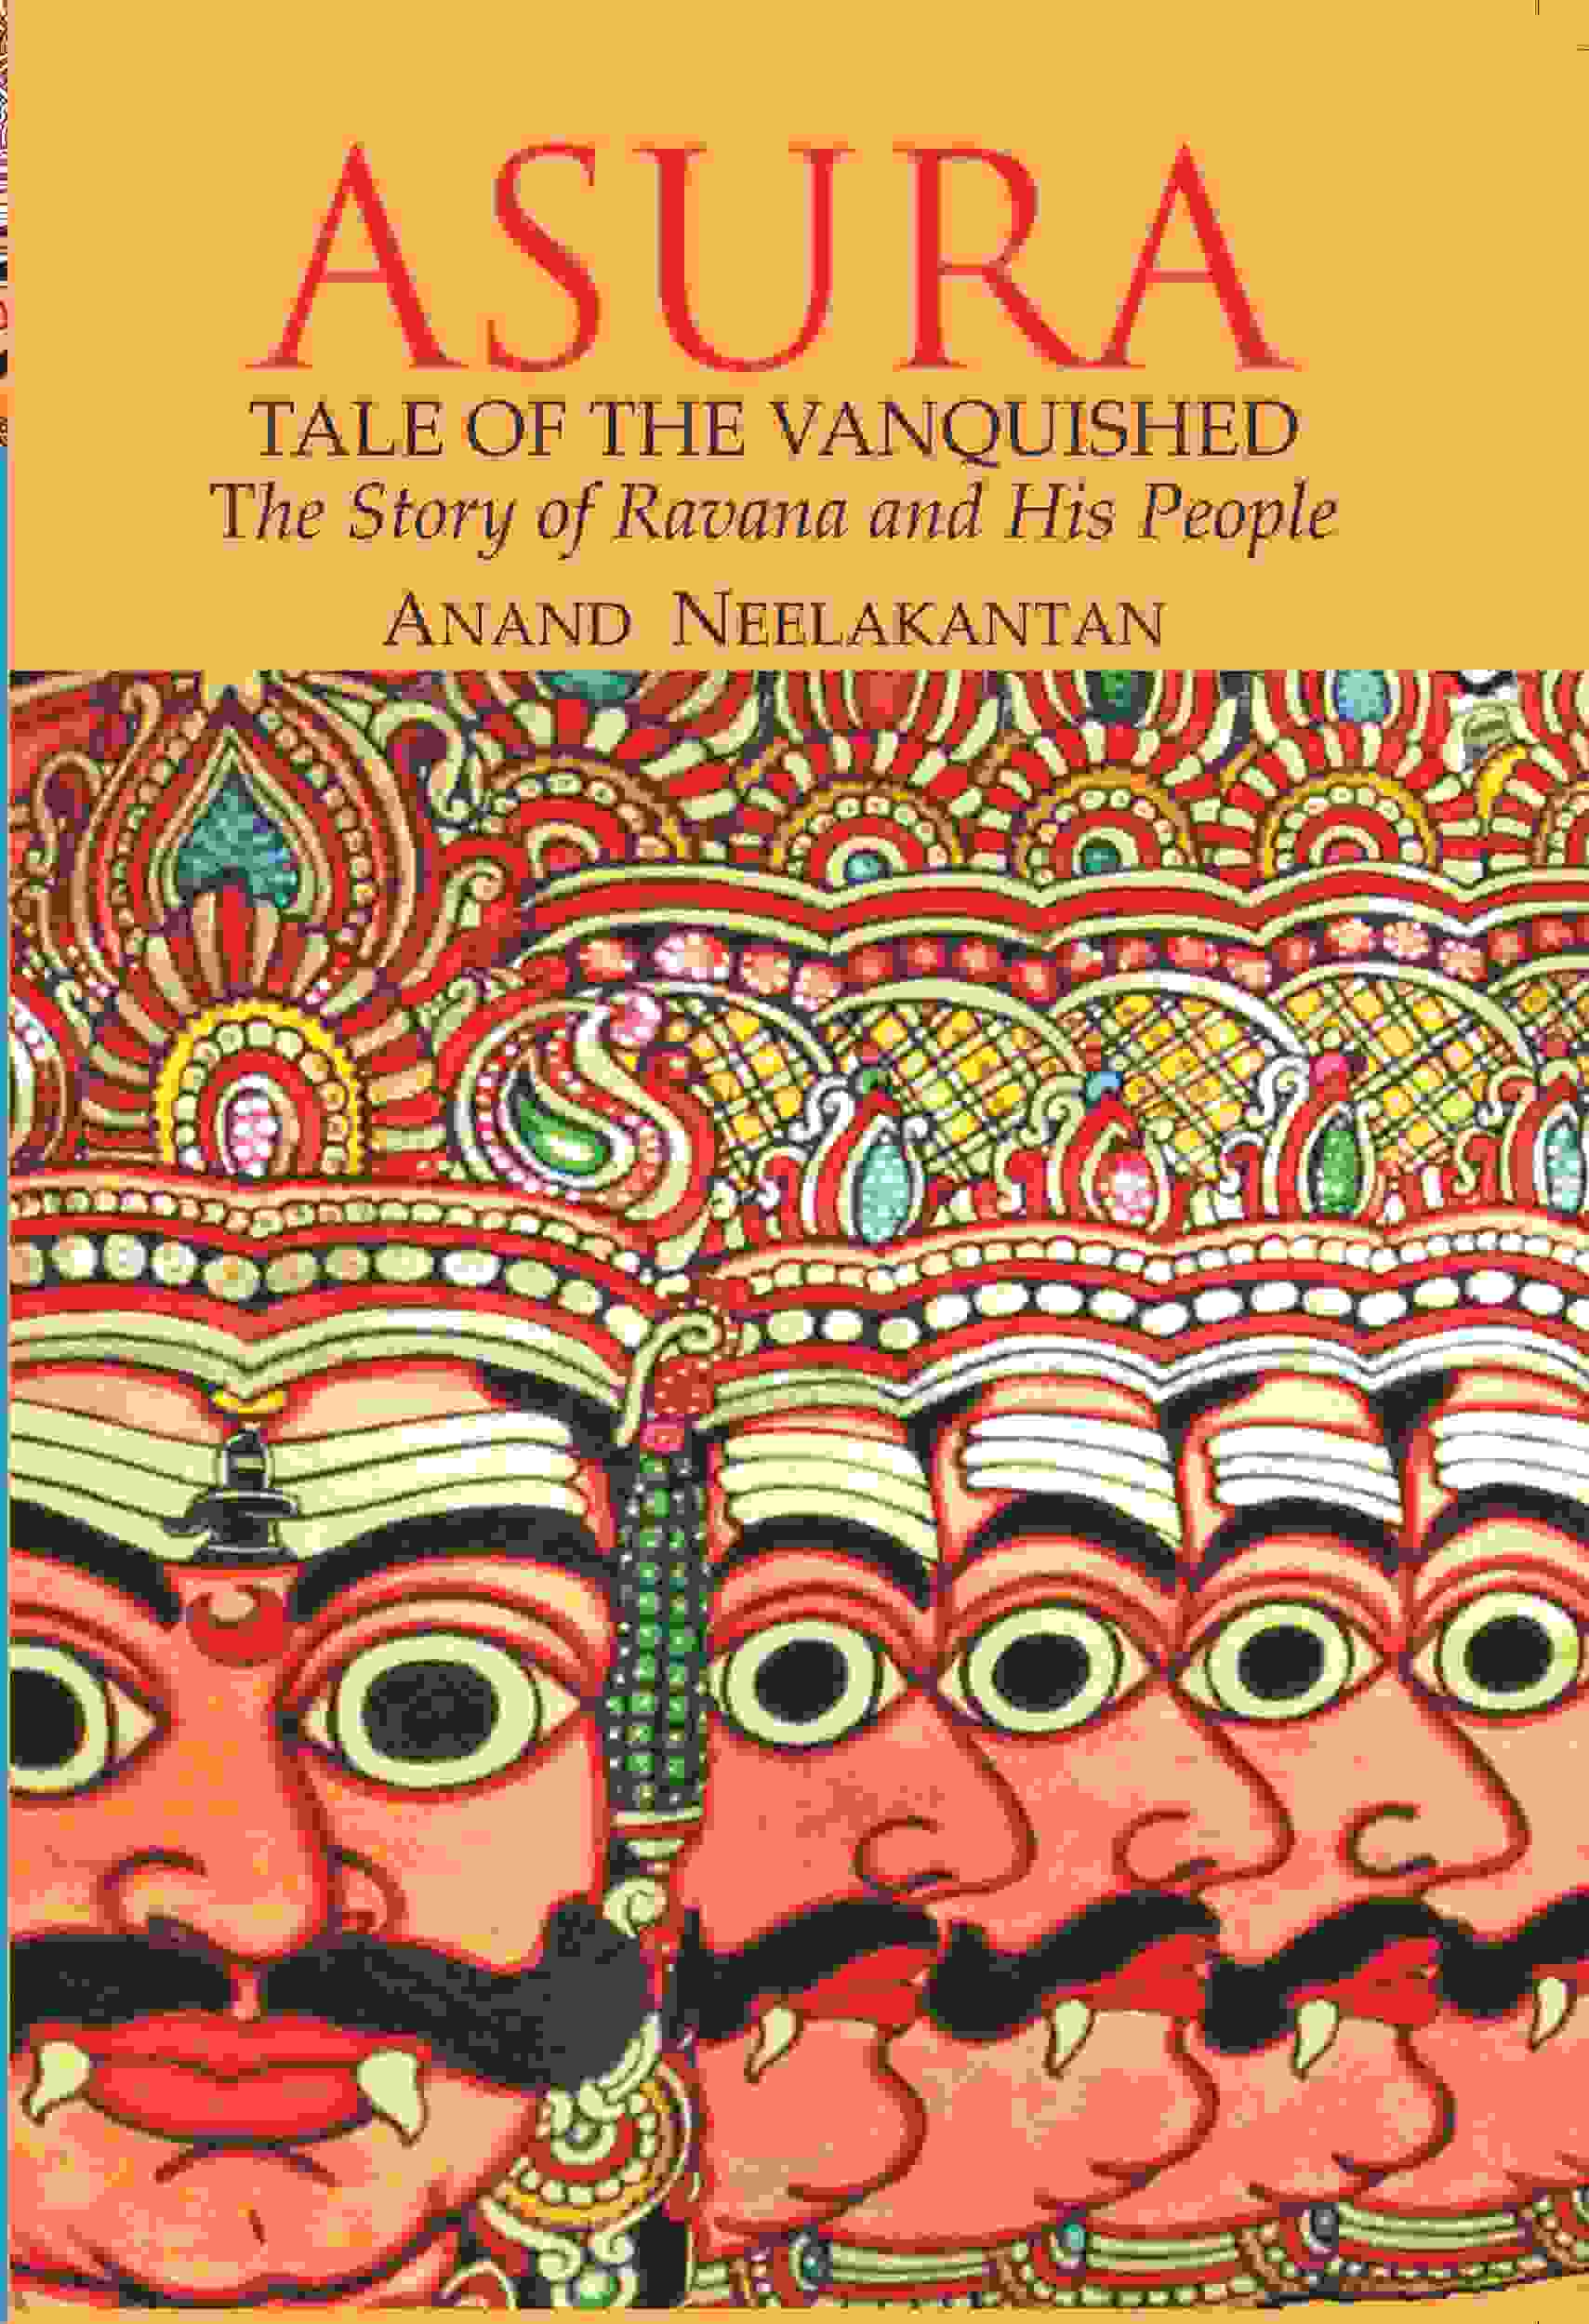 ASURA : Tale of the Vanquished